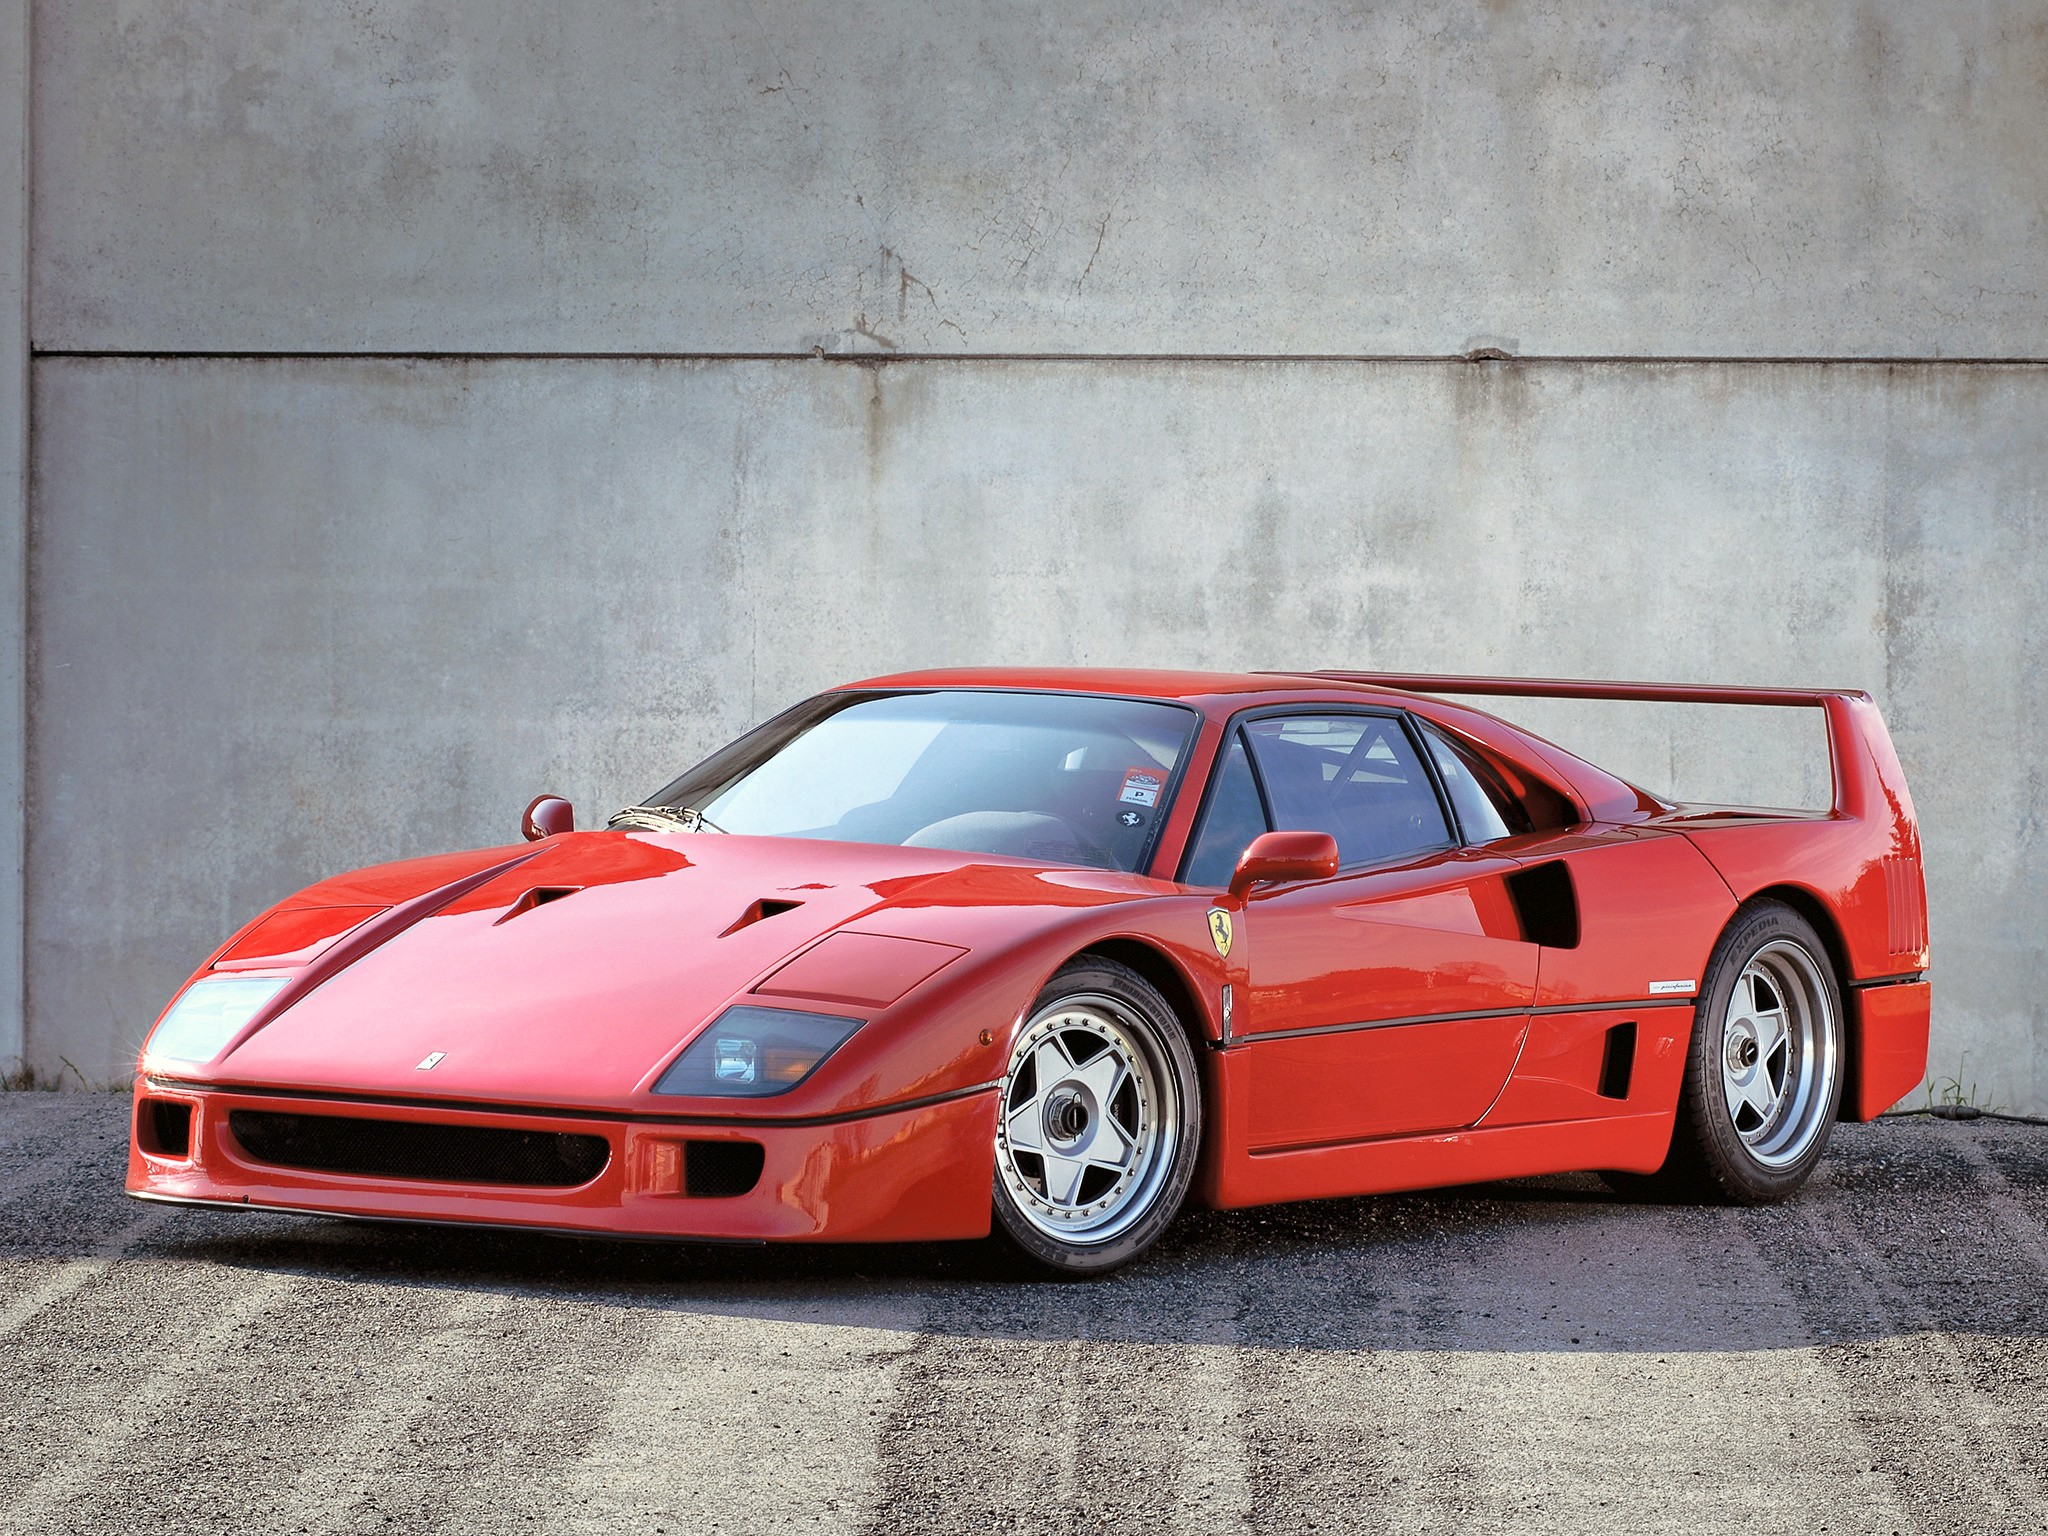 1988 ferrari f40 images hd cars wallpaper ferrari f40 specs 1987 1988 1989 1990 1991 1992 autoevolution ferrari f40 1987 1992 vanachro images vanachro Image collections